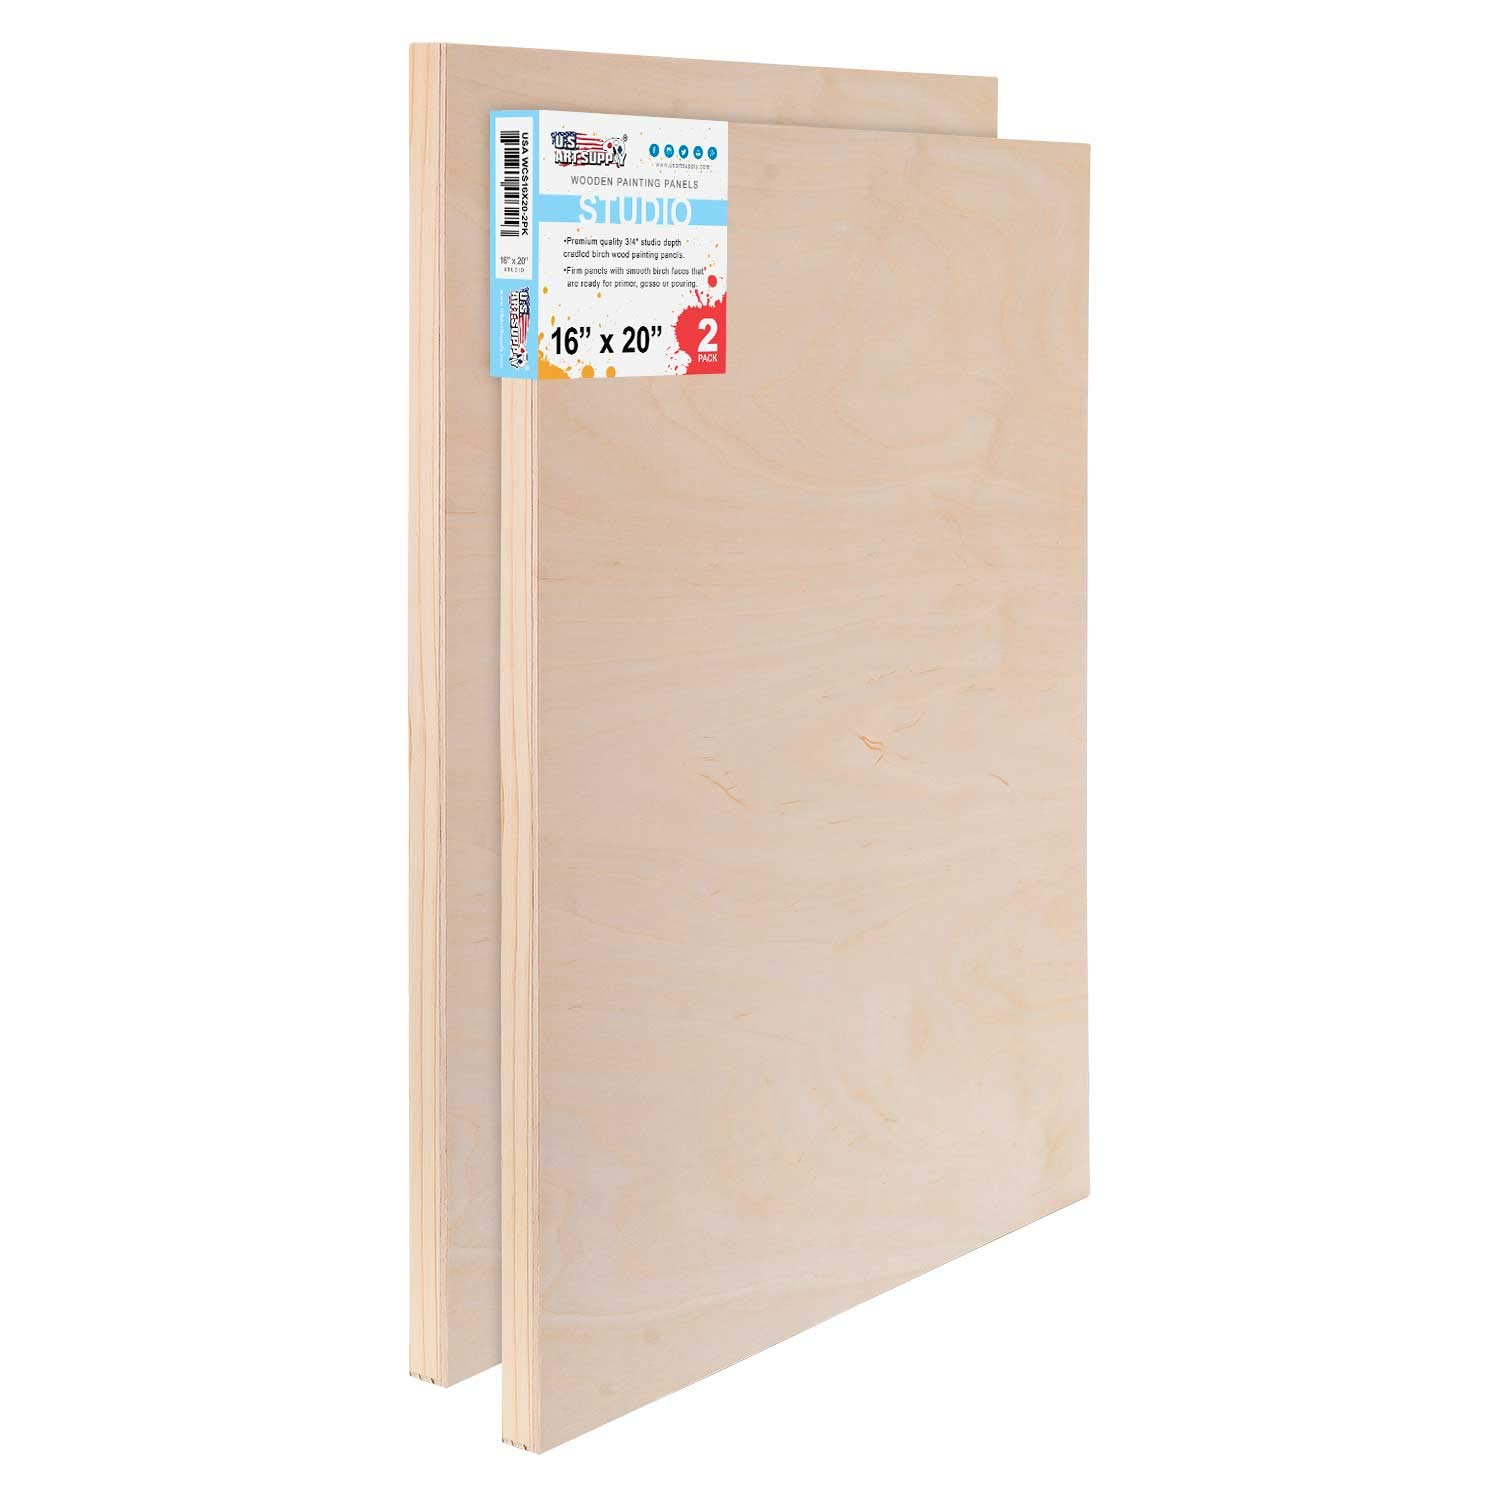 U.S. Art Supply 16'' x 20'' Birch Wood Paint Pouring Panel Boards, Studio 3/4'' Deep Cradle (Pack of 2) - Artist Wooden Wall Canvases - Painting Mixed-Media Craft, Acrylic, Oil, Watercolor, Encaustic